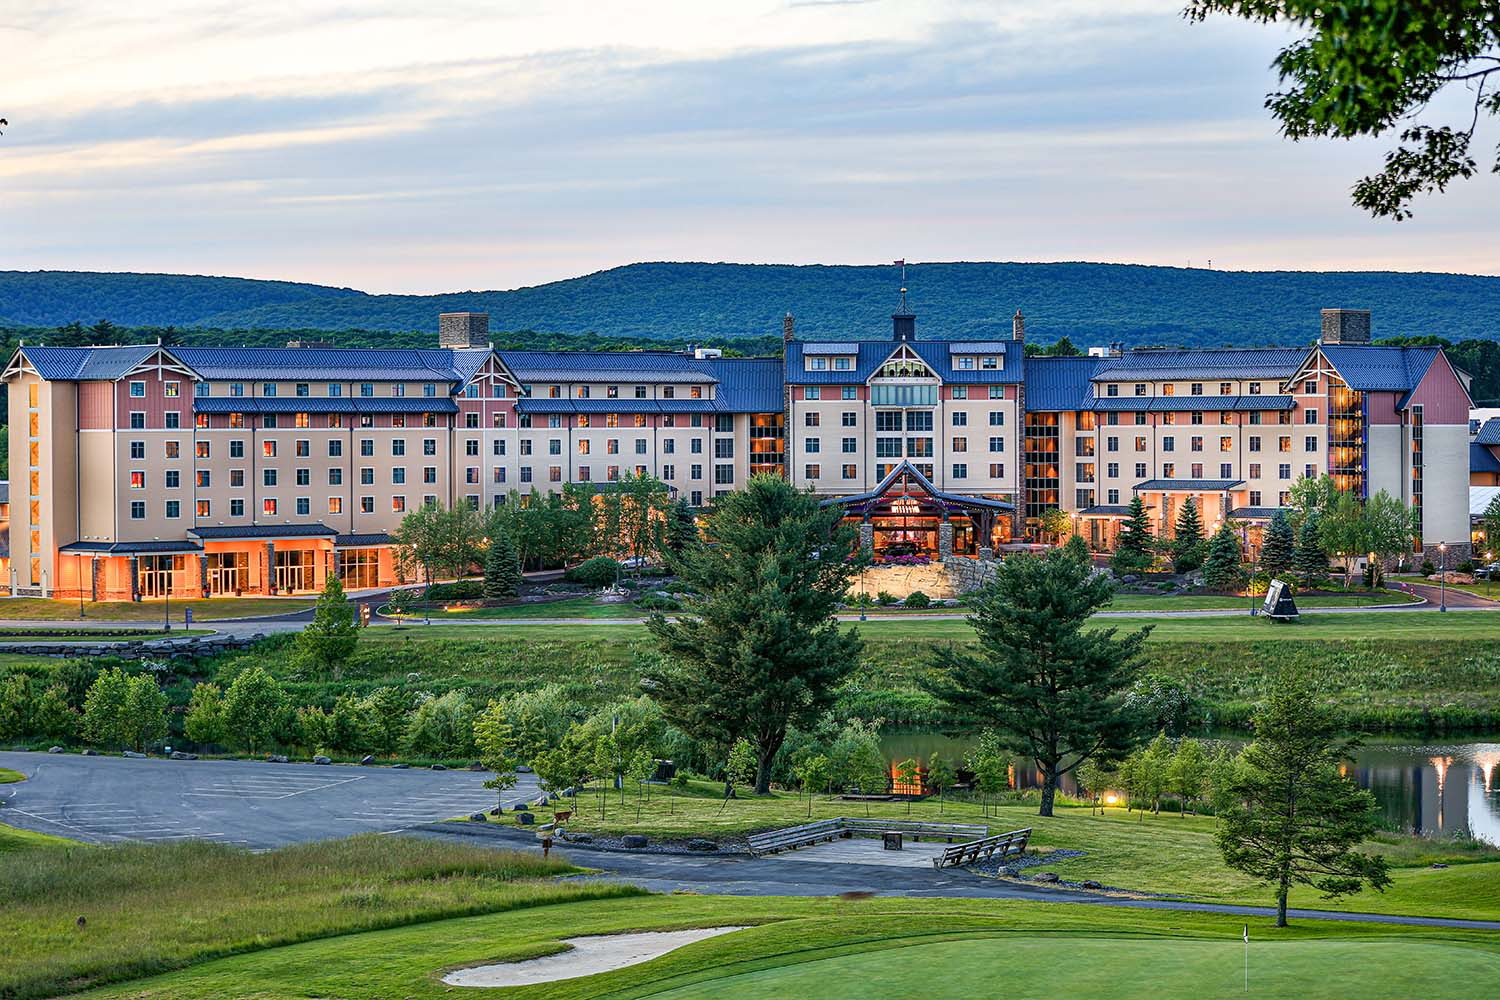 Mount Airy Casino Resort set amid the stunning Pocono Mountains